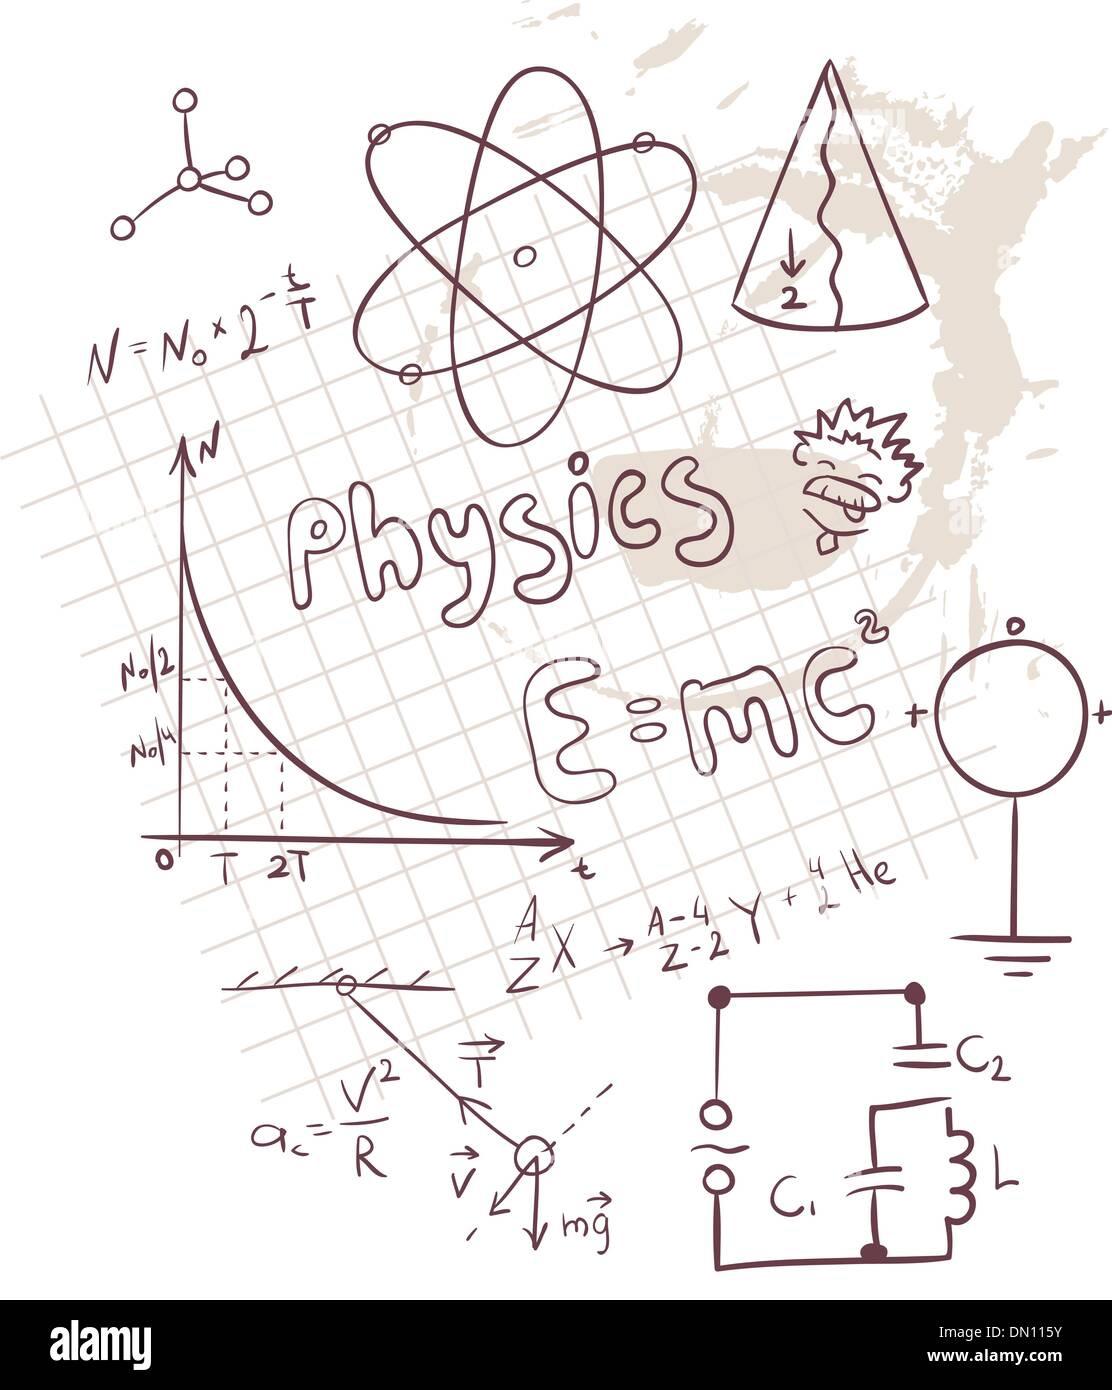 Physics set - Stock Image